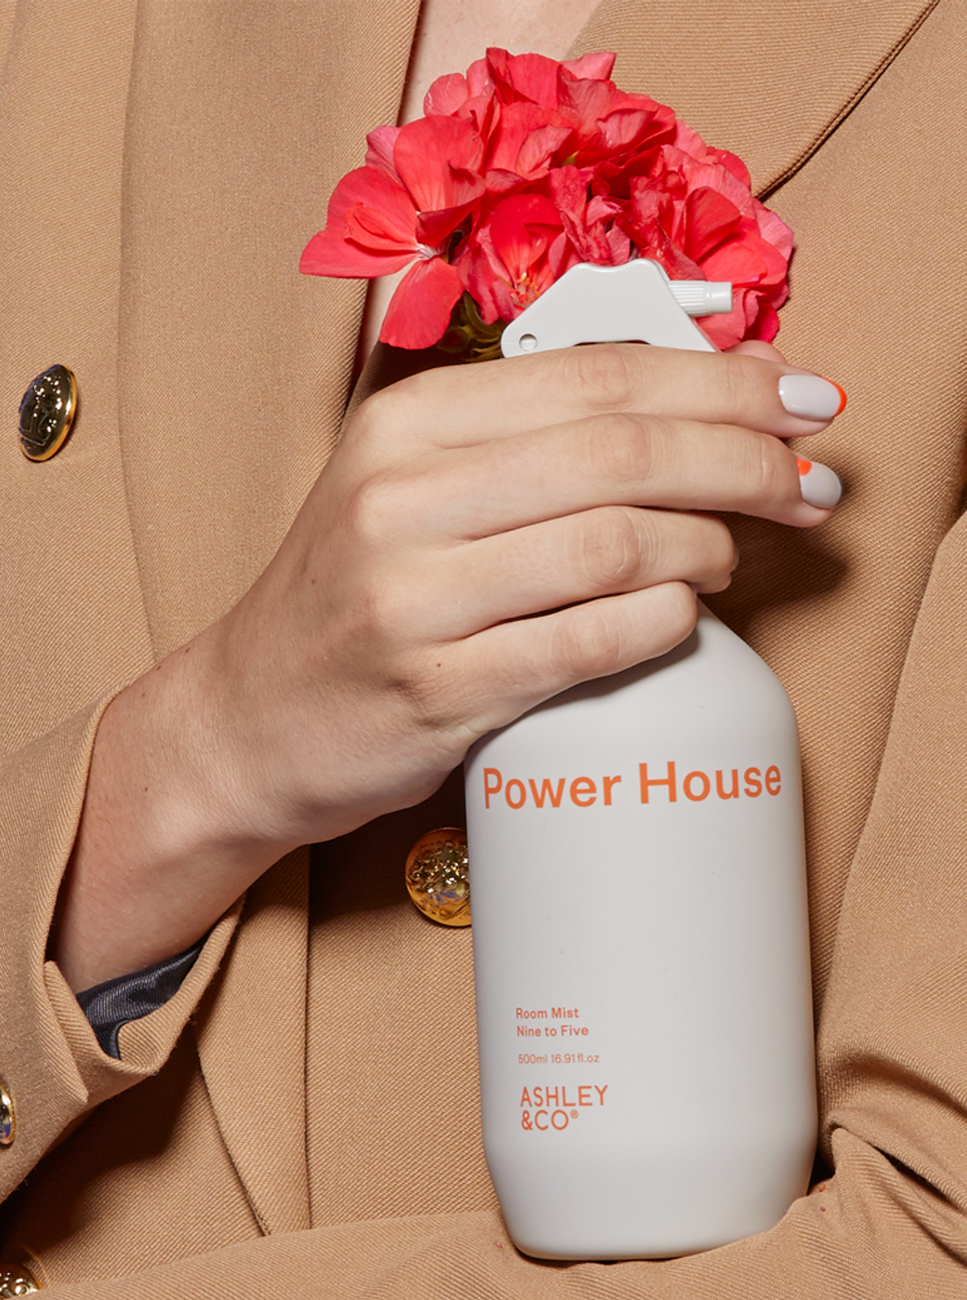 ASHLEY & CO - Power House - Nine to Five 500ml